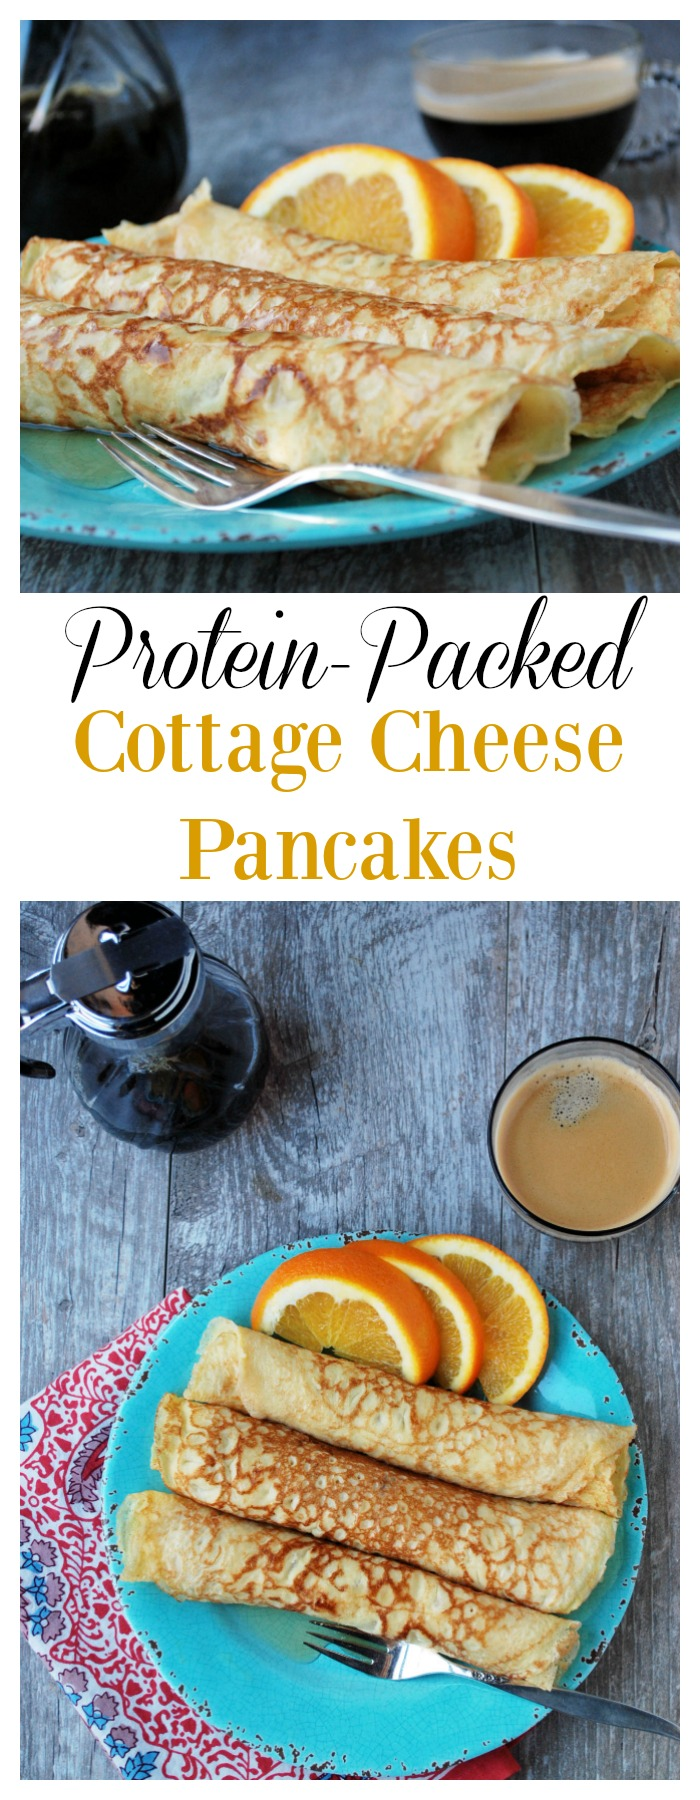 Protein Packed Cottage Cheese Pancakes recipe #cleaneatingpancakes #healthybreakfast #proteinpancakes #pancakes via @Ameessavorydish